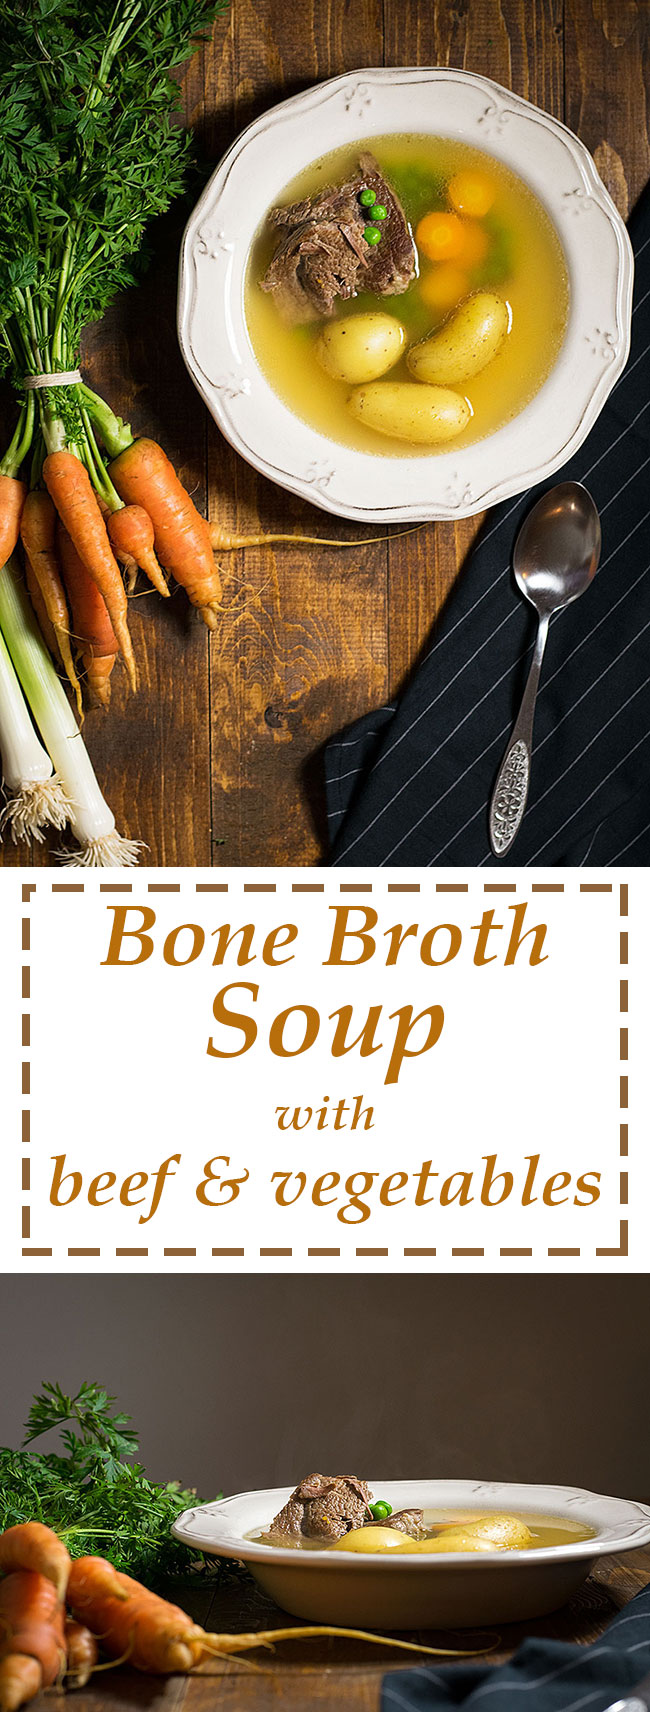 bone broth soup with beef and vegetables 5